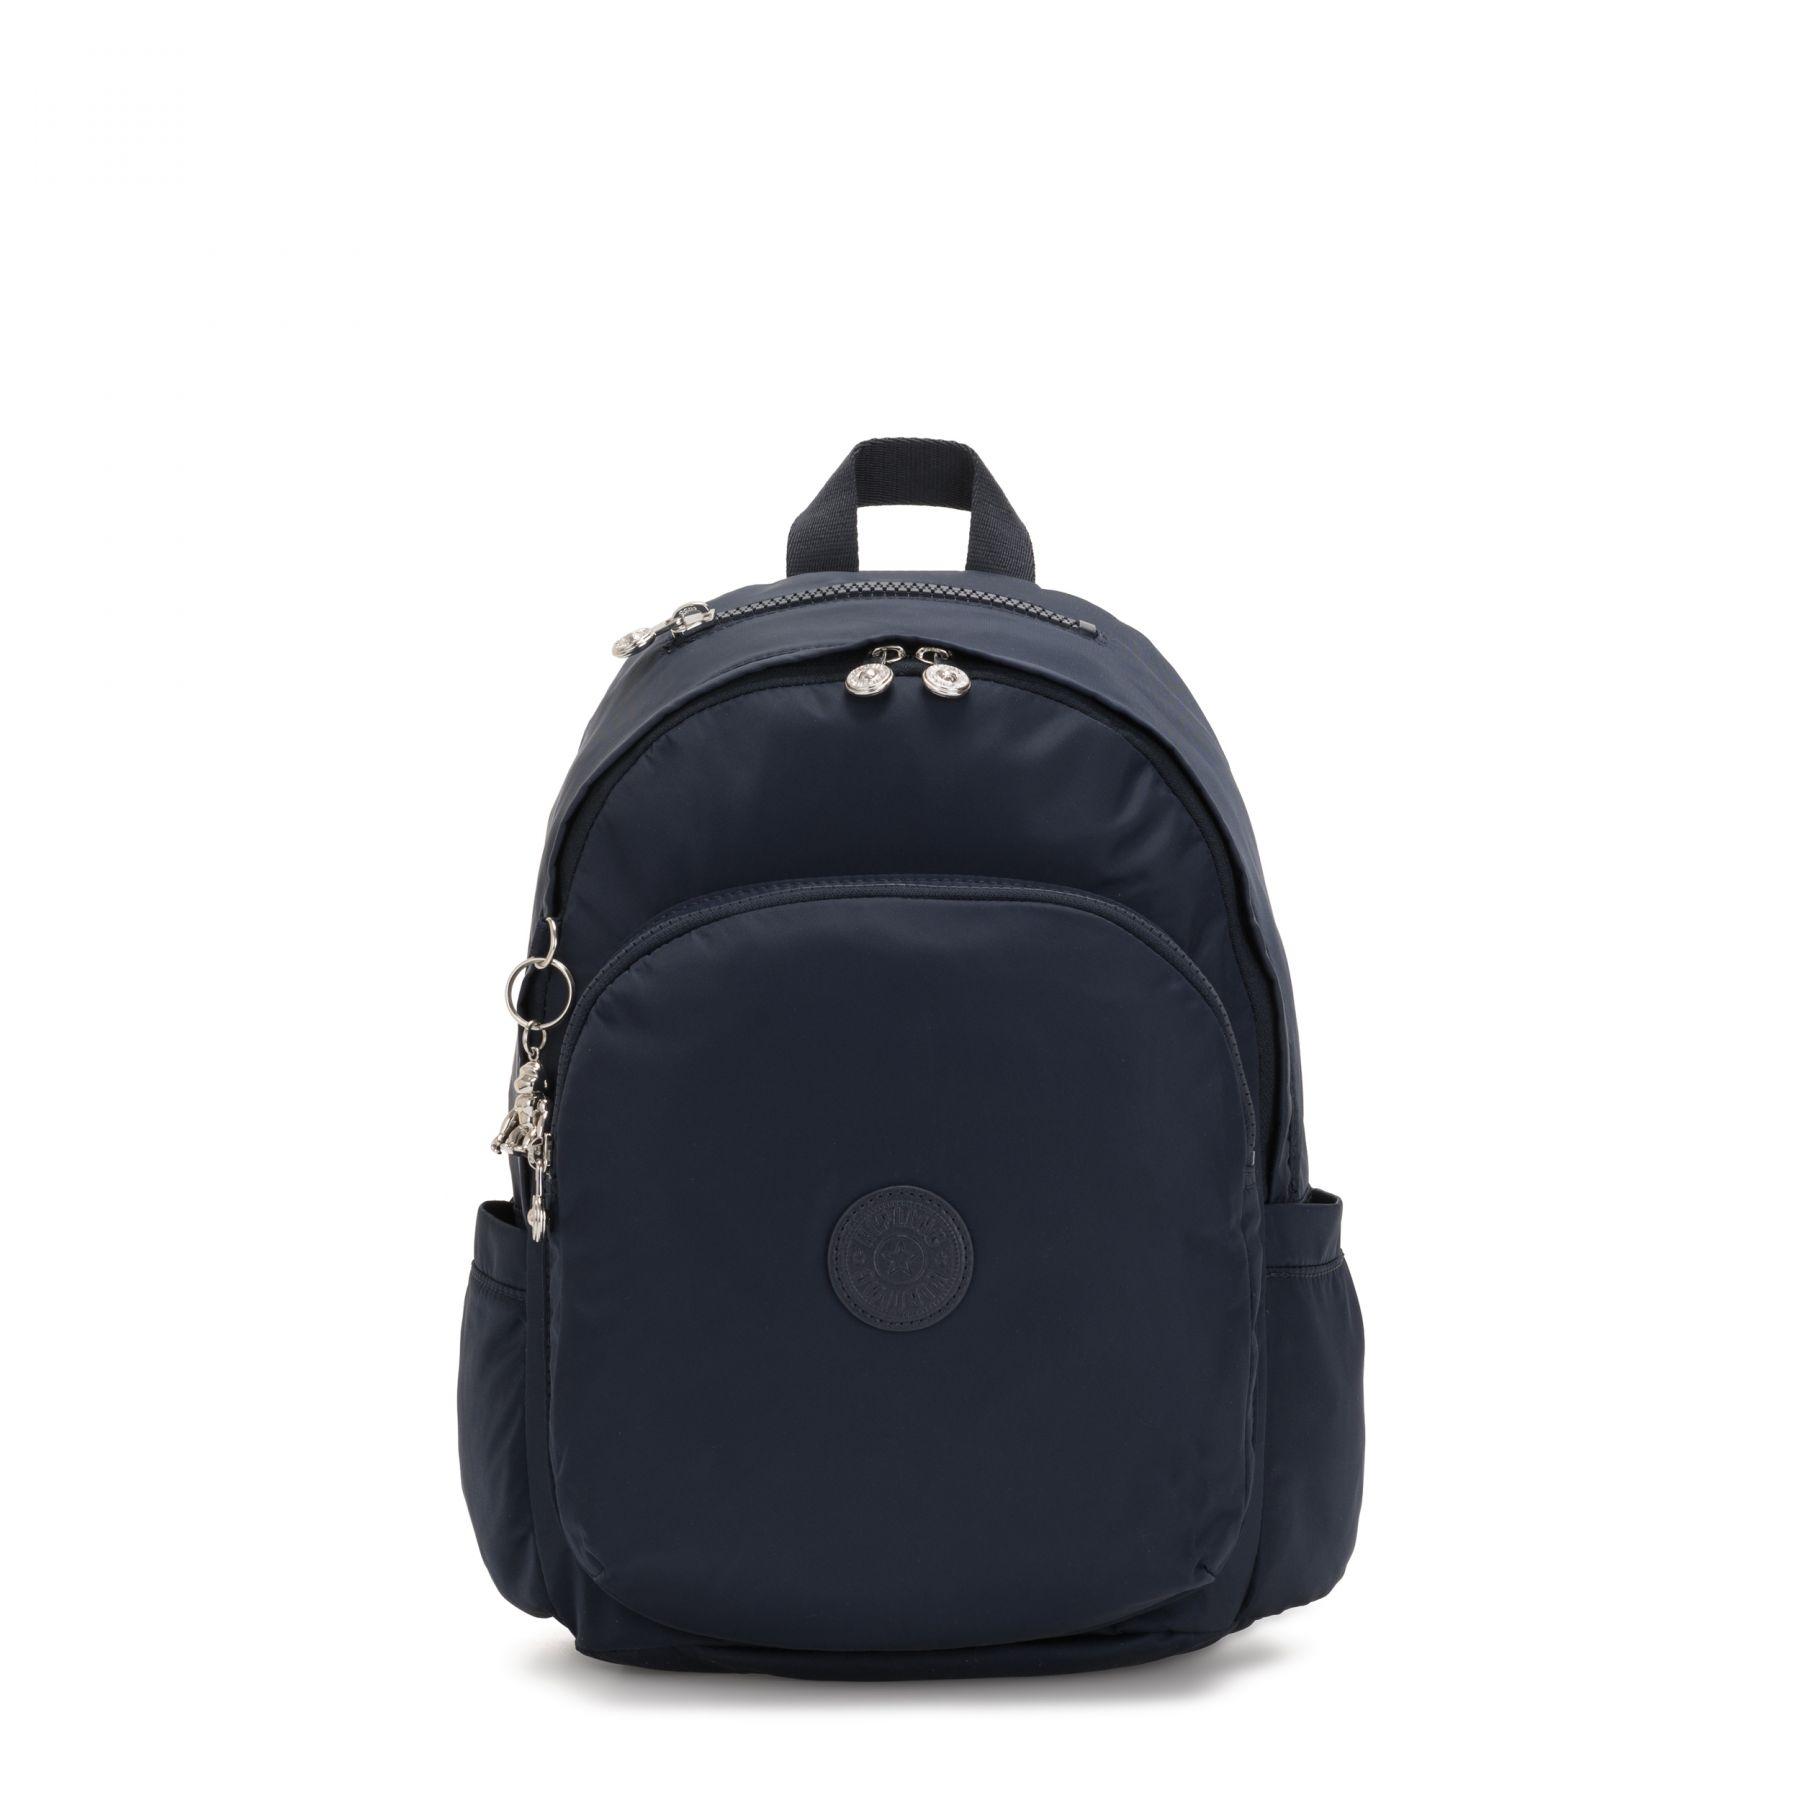 DELIA Latest Backpacks by Kipling - Front view